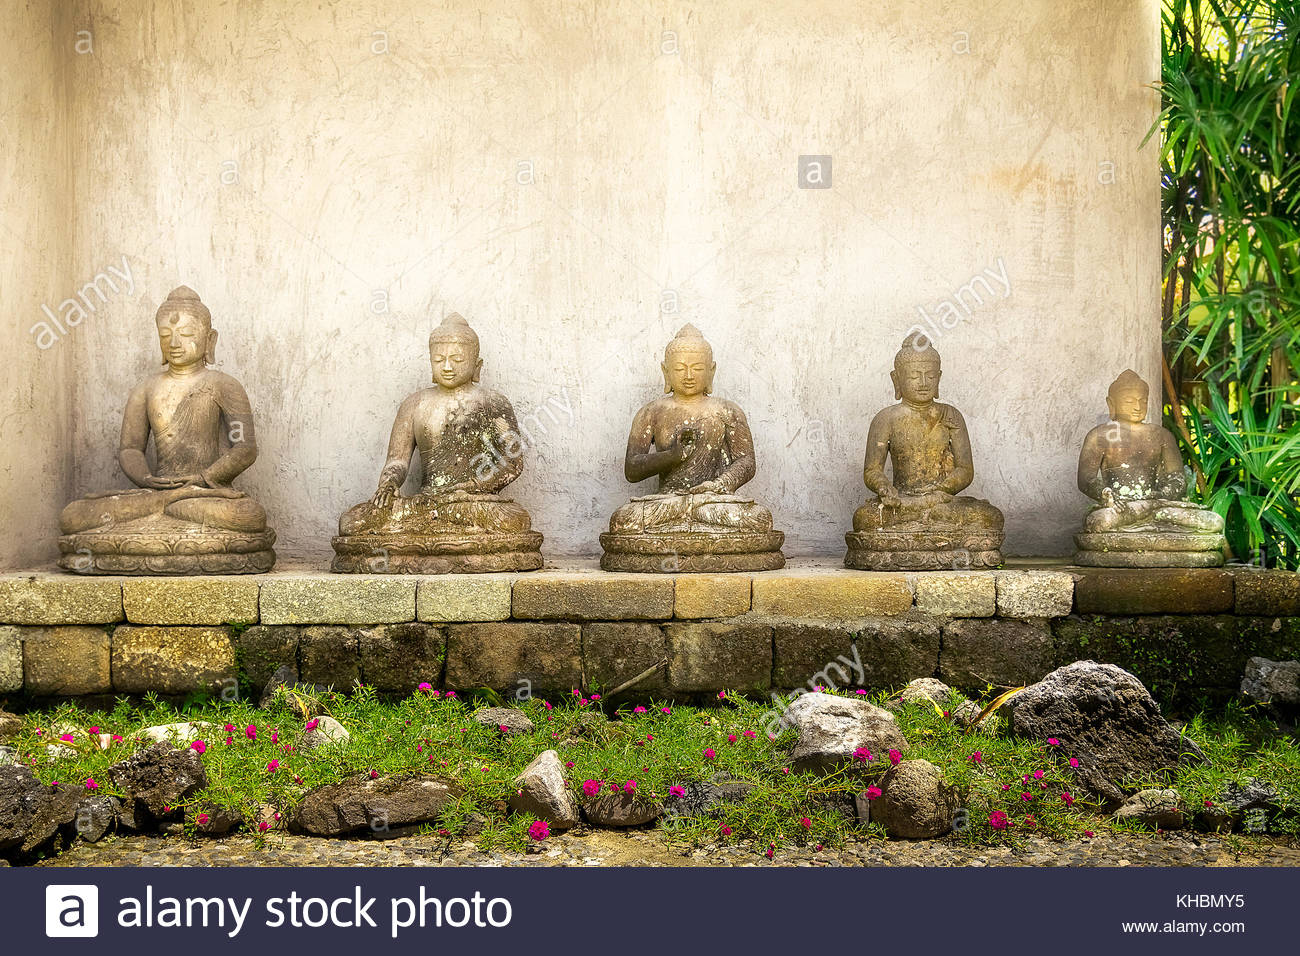 Figuren Aus Stein Buddha Figure At Borobudur Stockfotos And Buddha Figure At